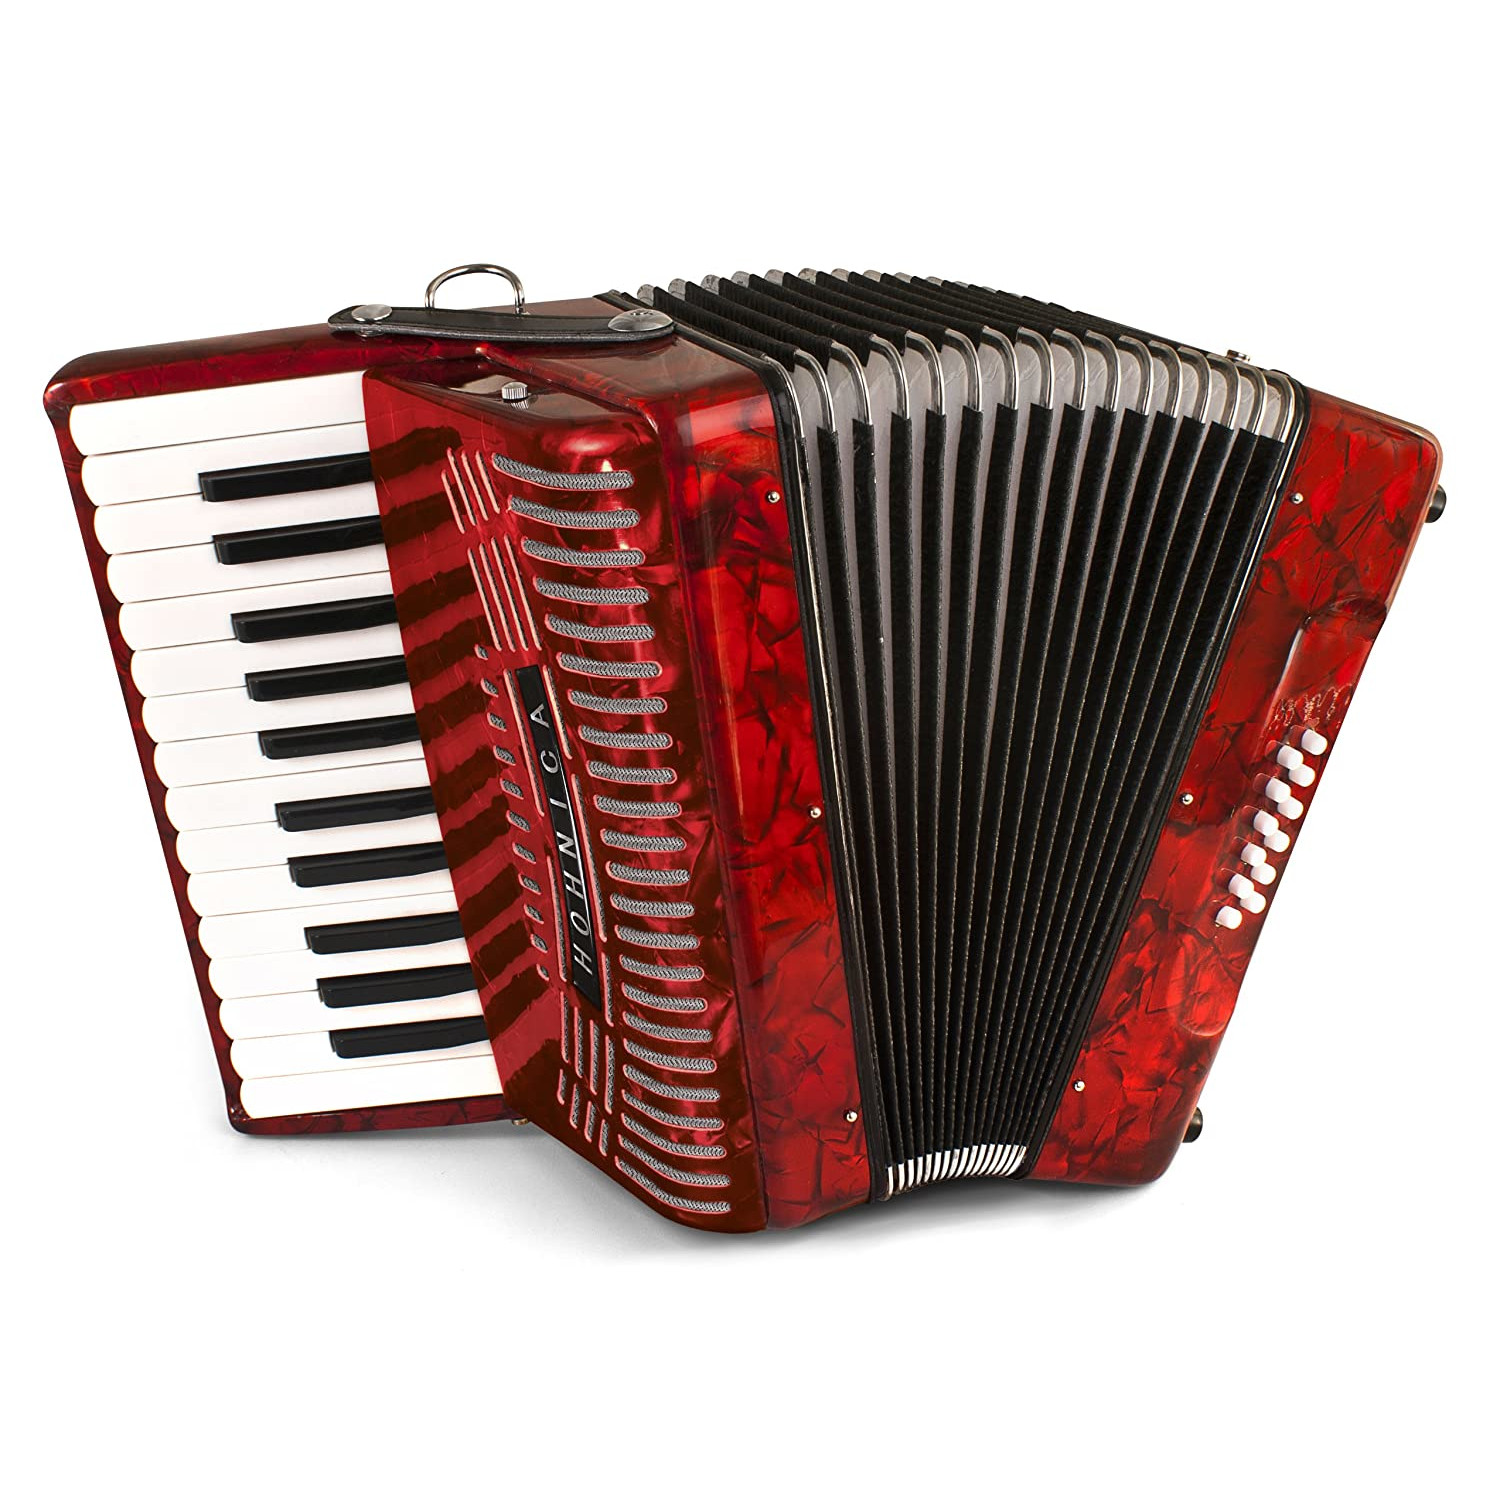 Hohner 12 Bass Entry Level Piano Accordion, pearl red